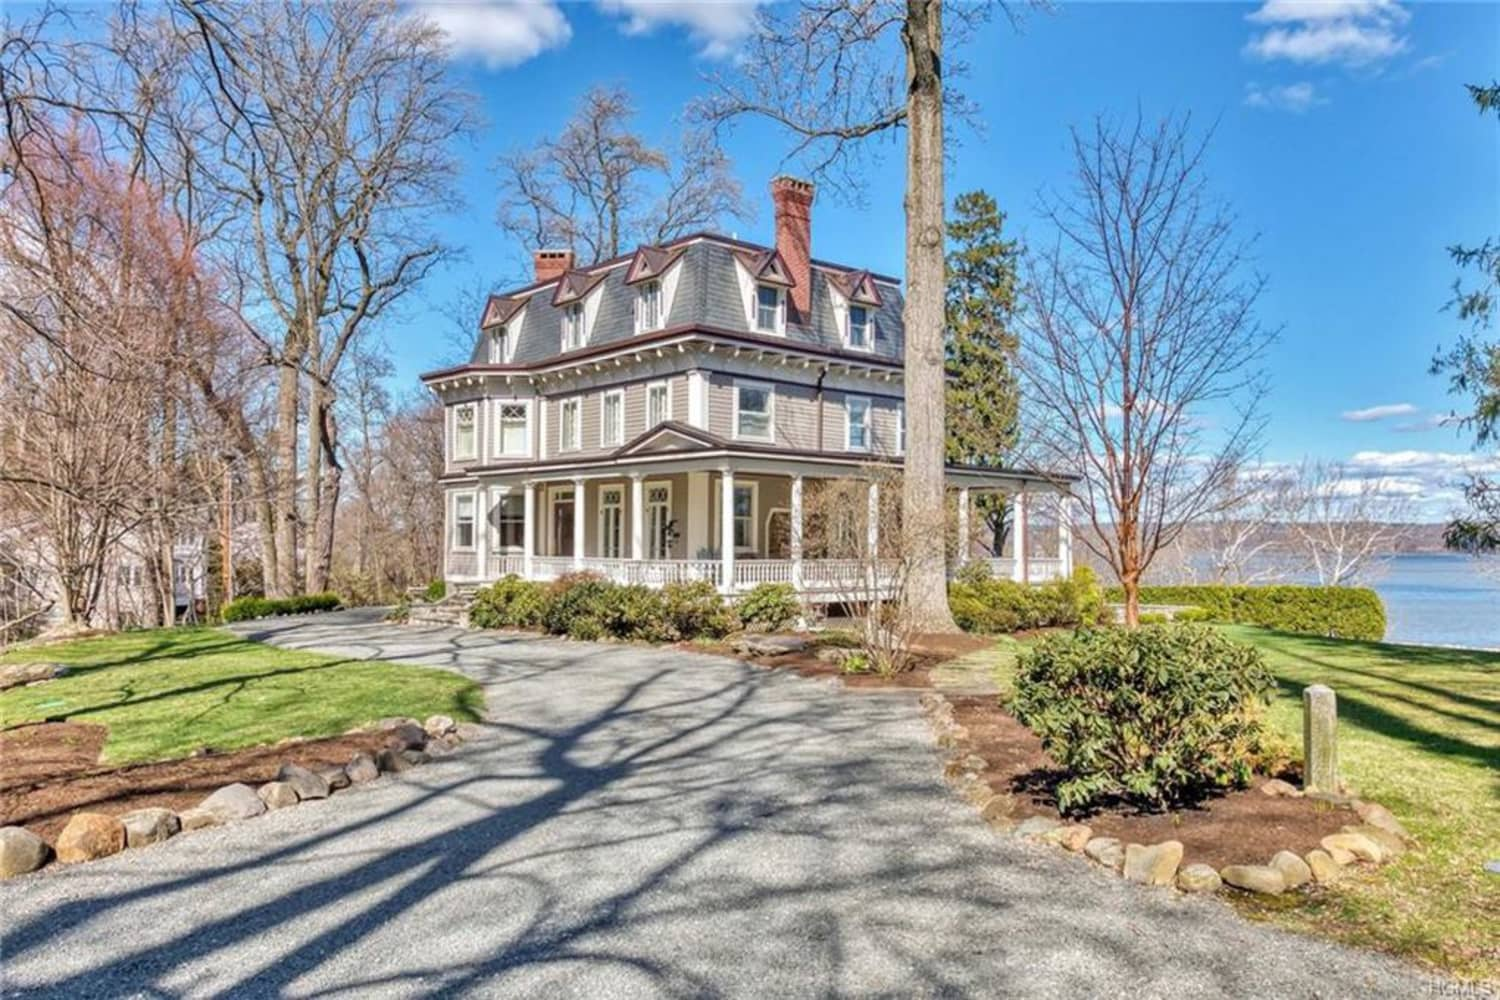 """The Victorian Mansion from """"Stepmom"""" Is for Sale, and We're Obsessed with the Wraparound Porch"""